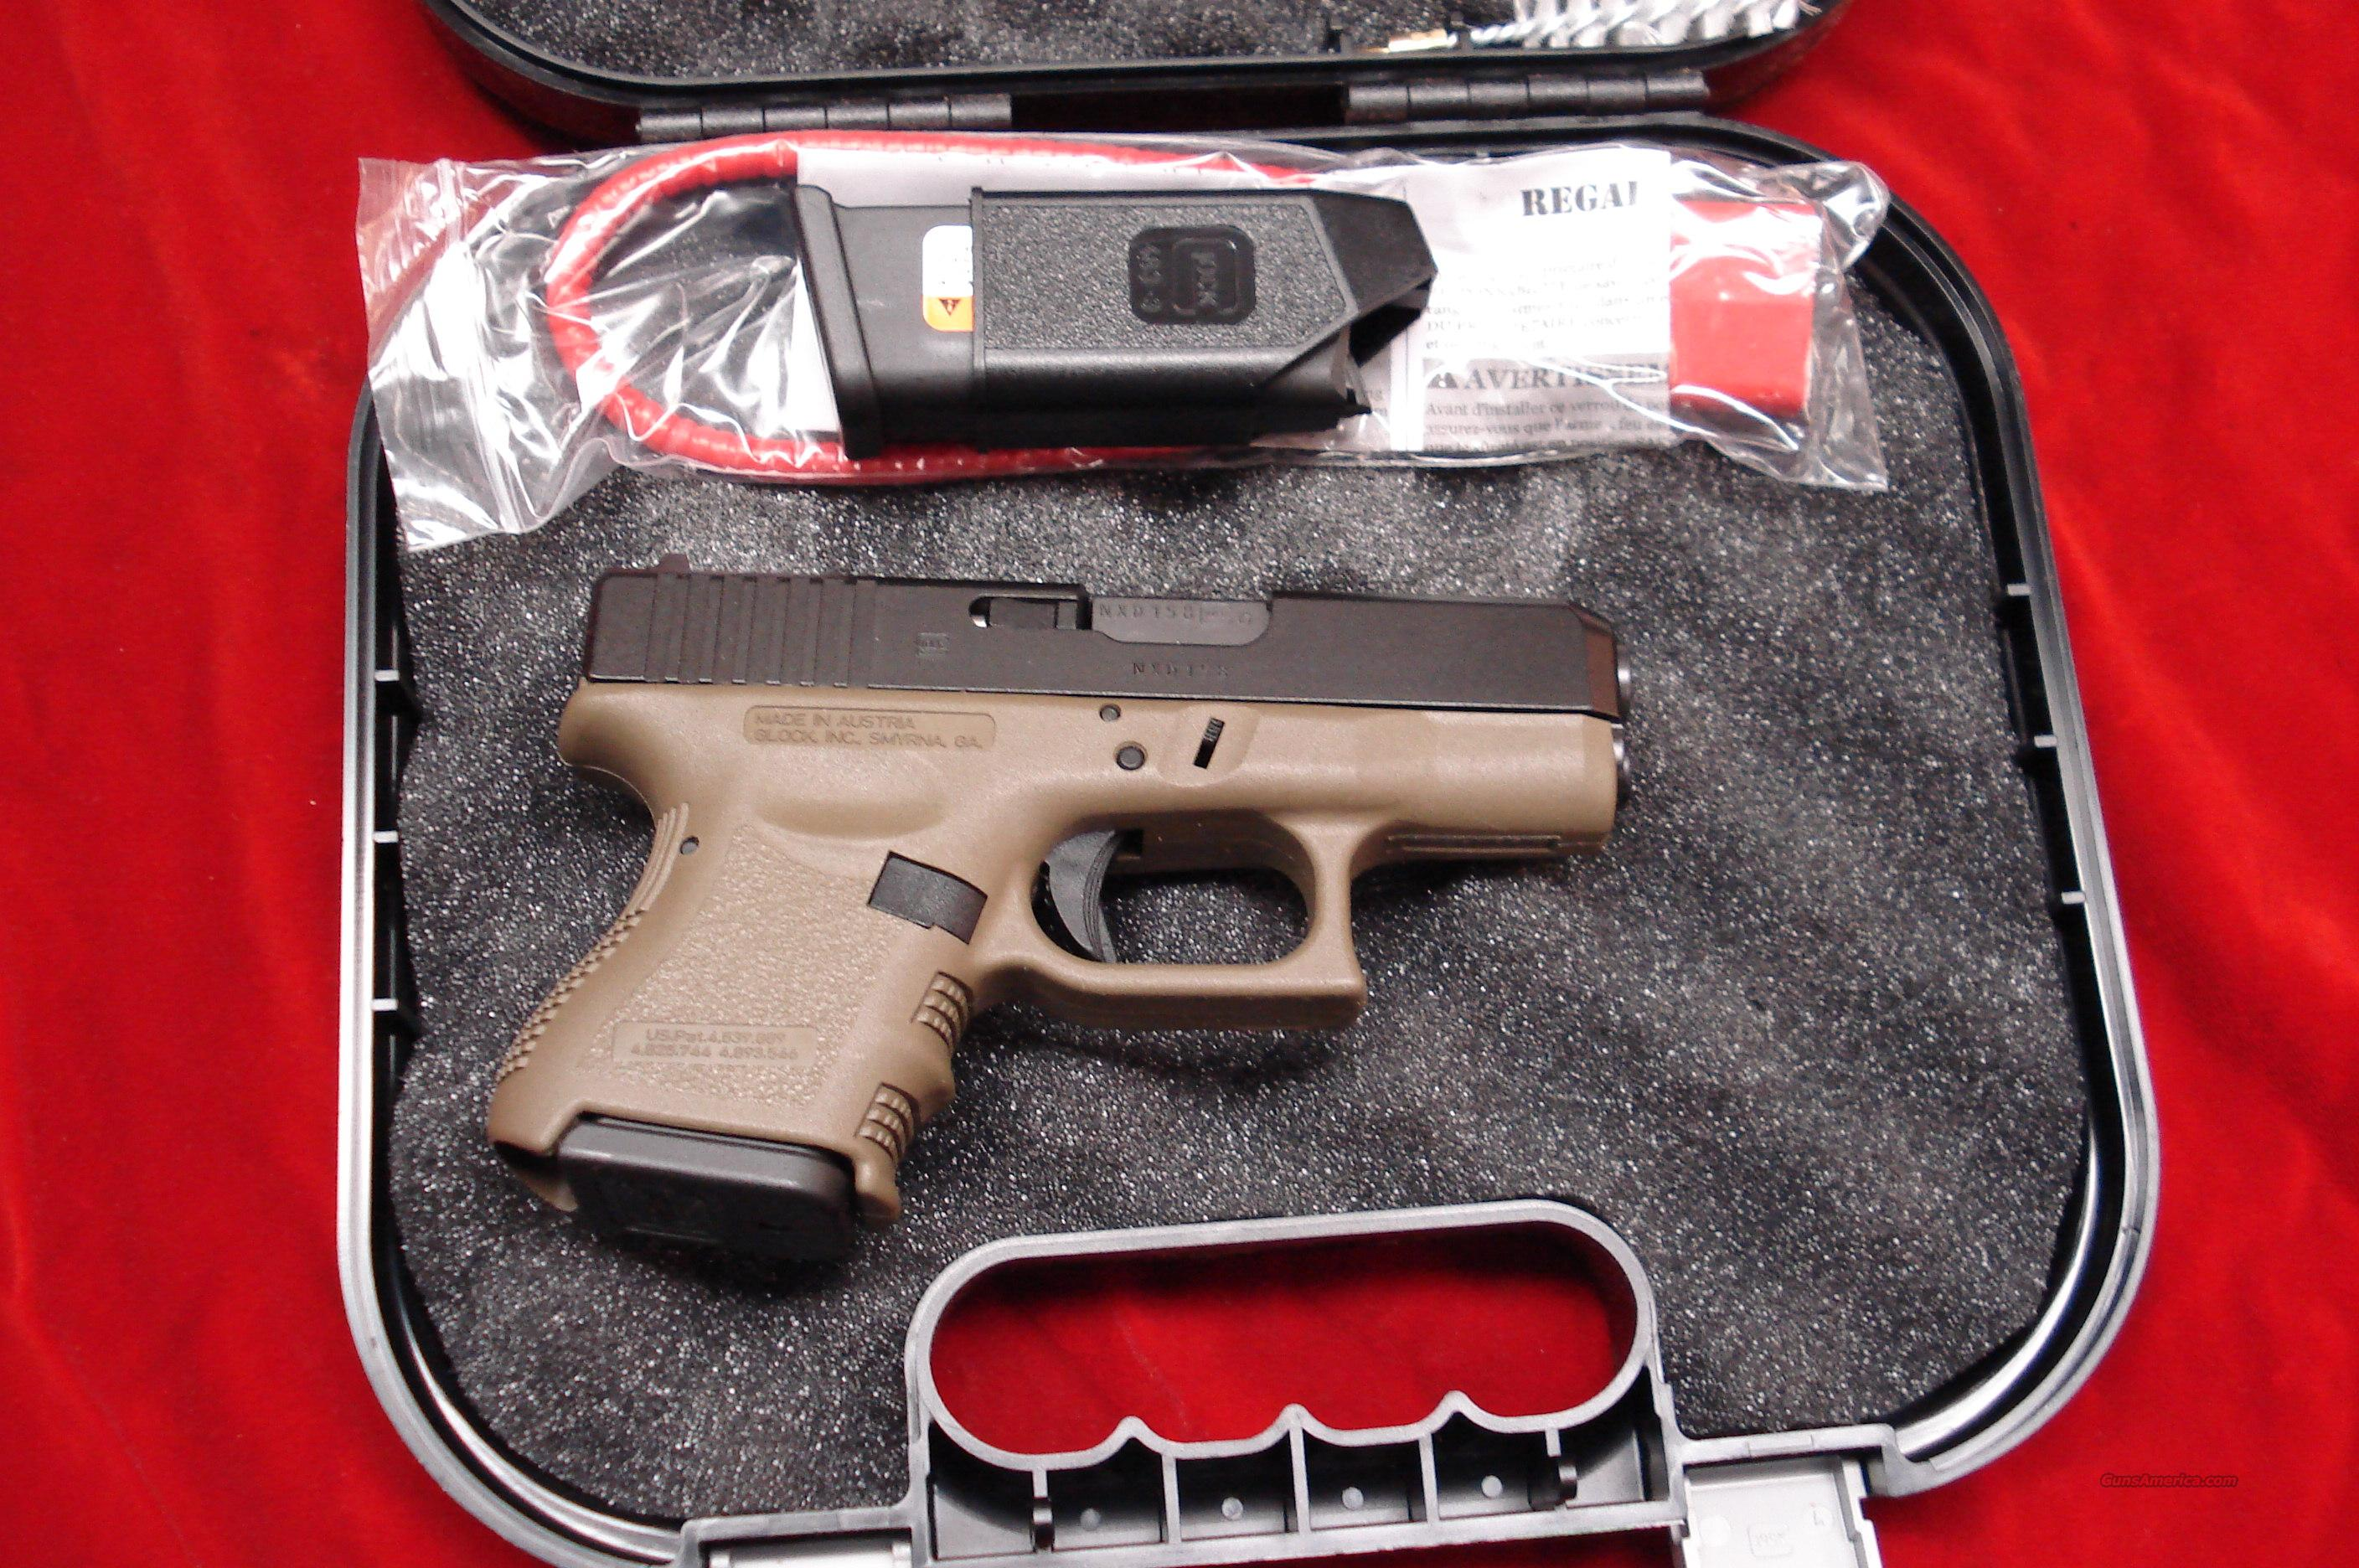 GLOCK MODEL 26  OD GREEN 9MM NEW   Guns > Pistols > Glock Pistols > 26/27